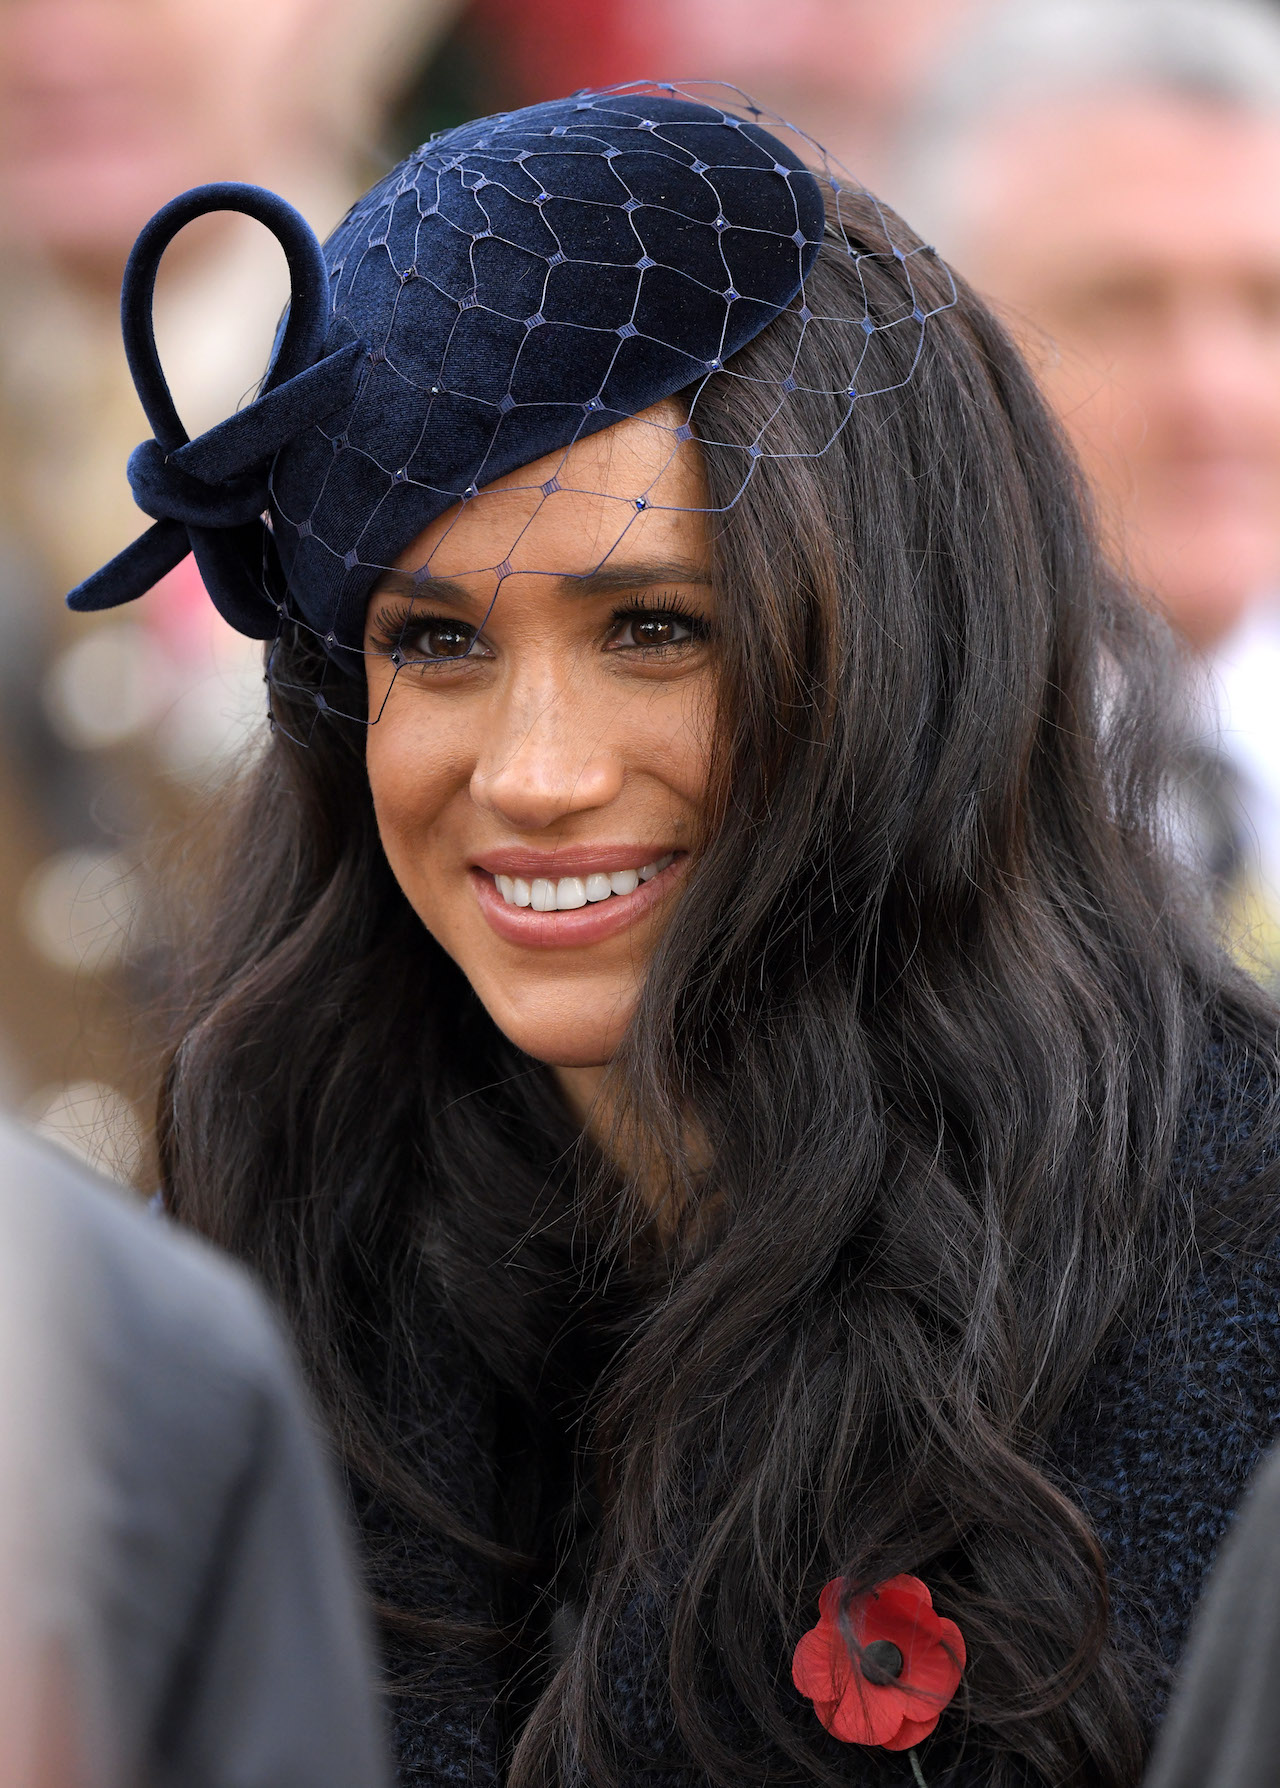 meghan markle with long brown hair wearing a navy blue hat